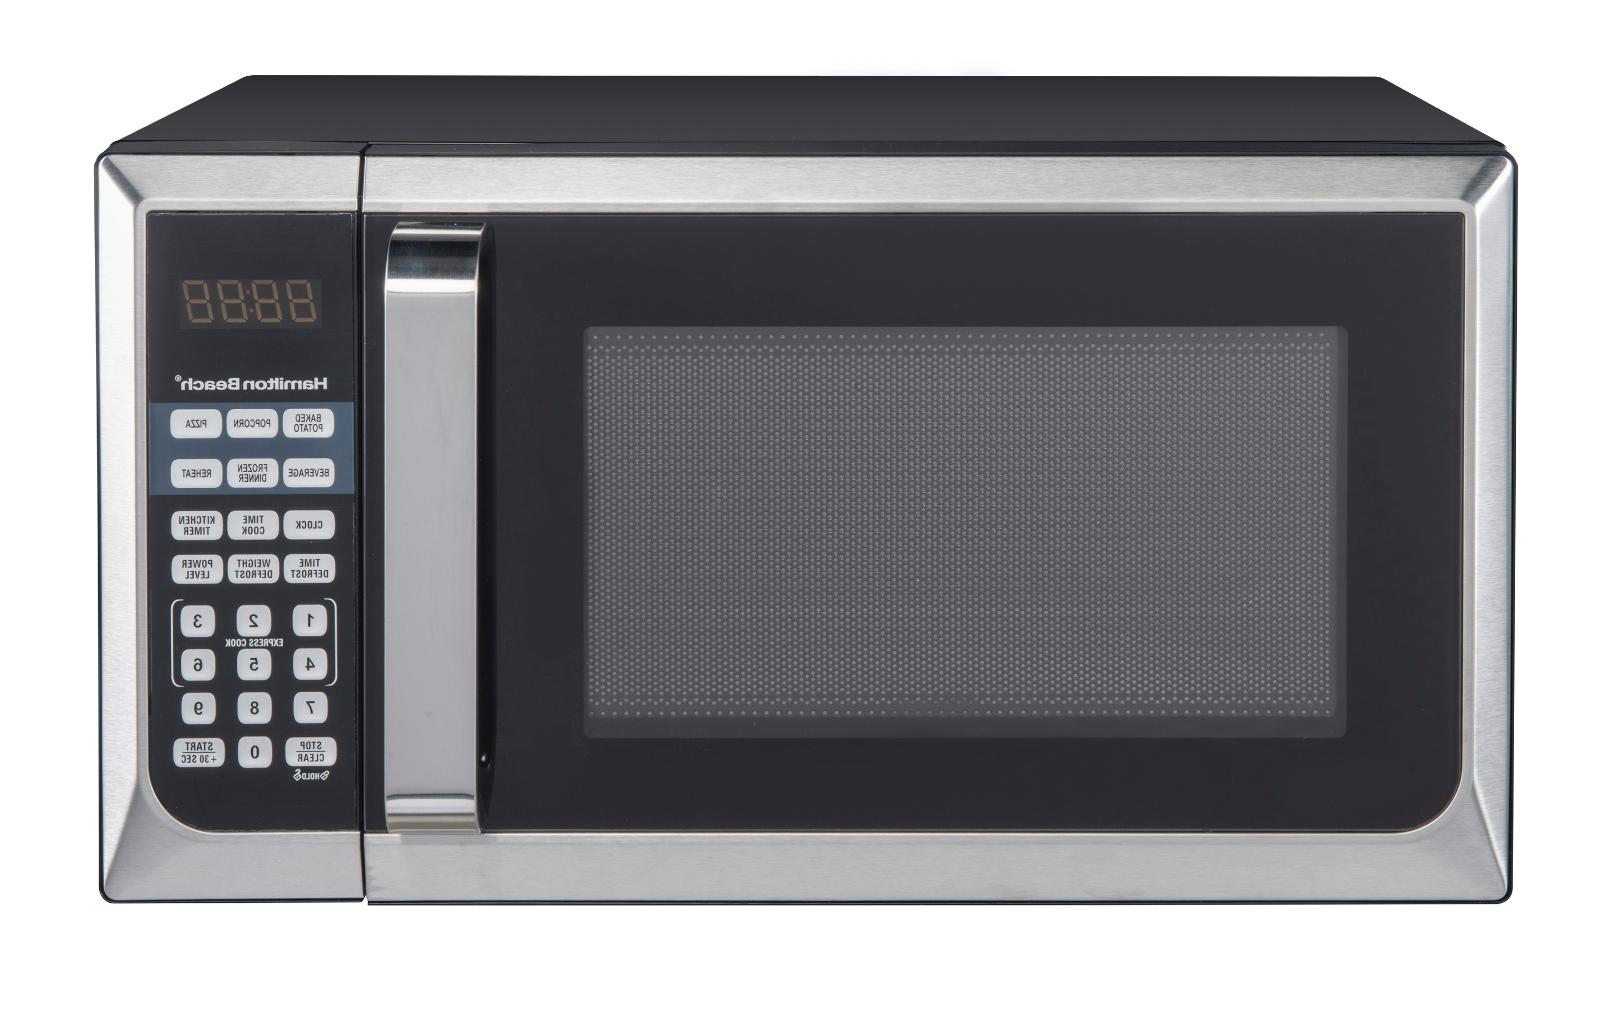 stainless steel counter top microwave oven